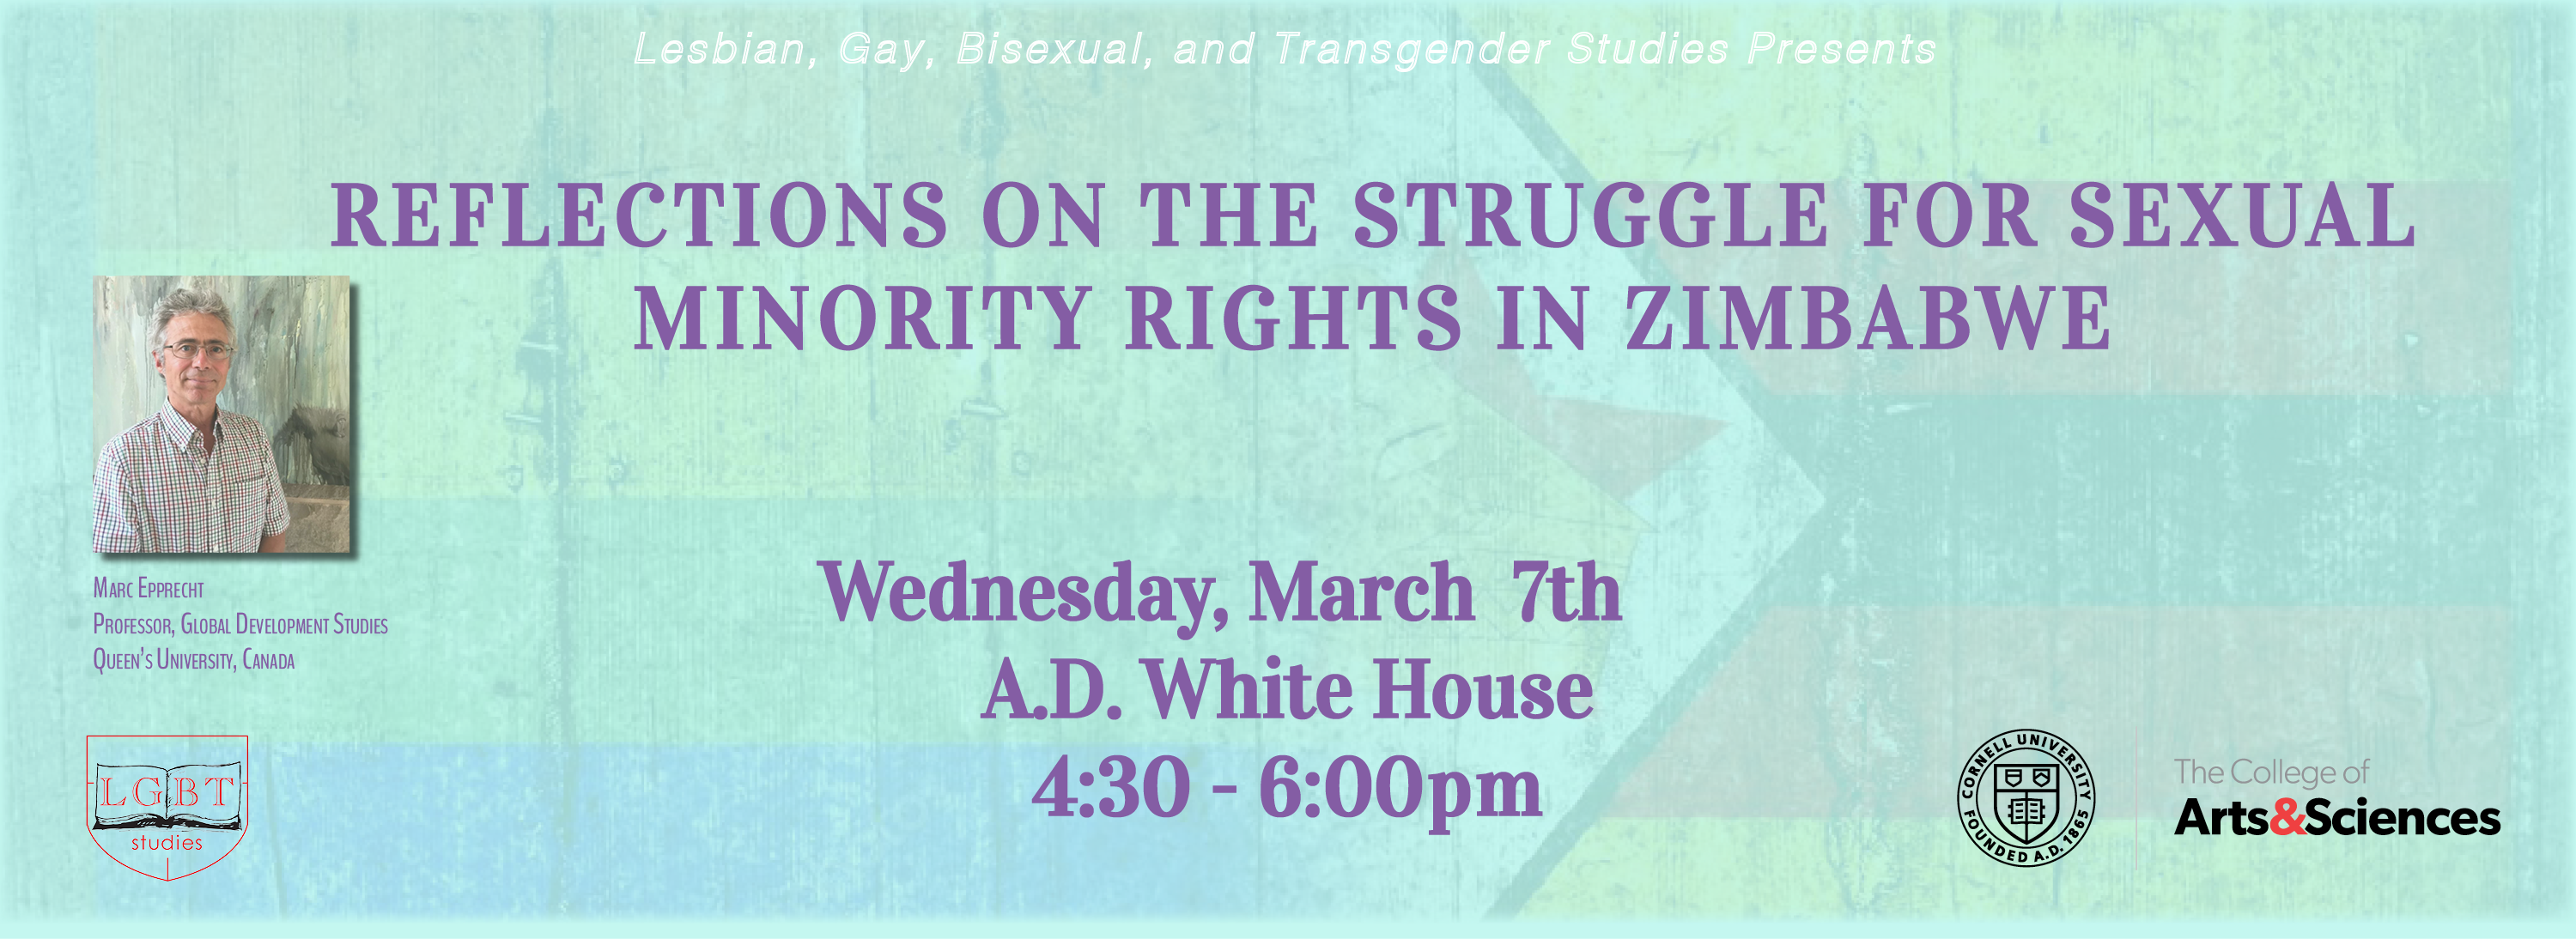 Prof. Epprecht and talk title against a backdrop of the Zimbabwean flag and the LGBT flag